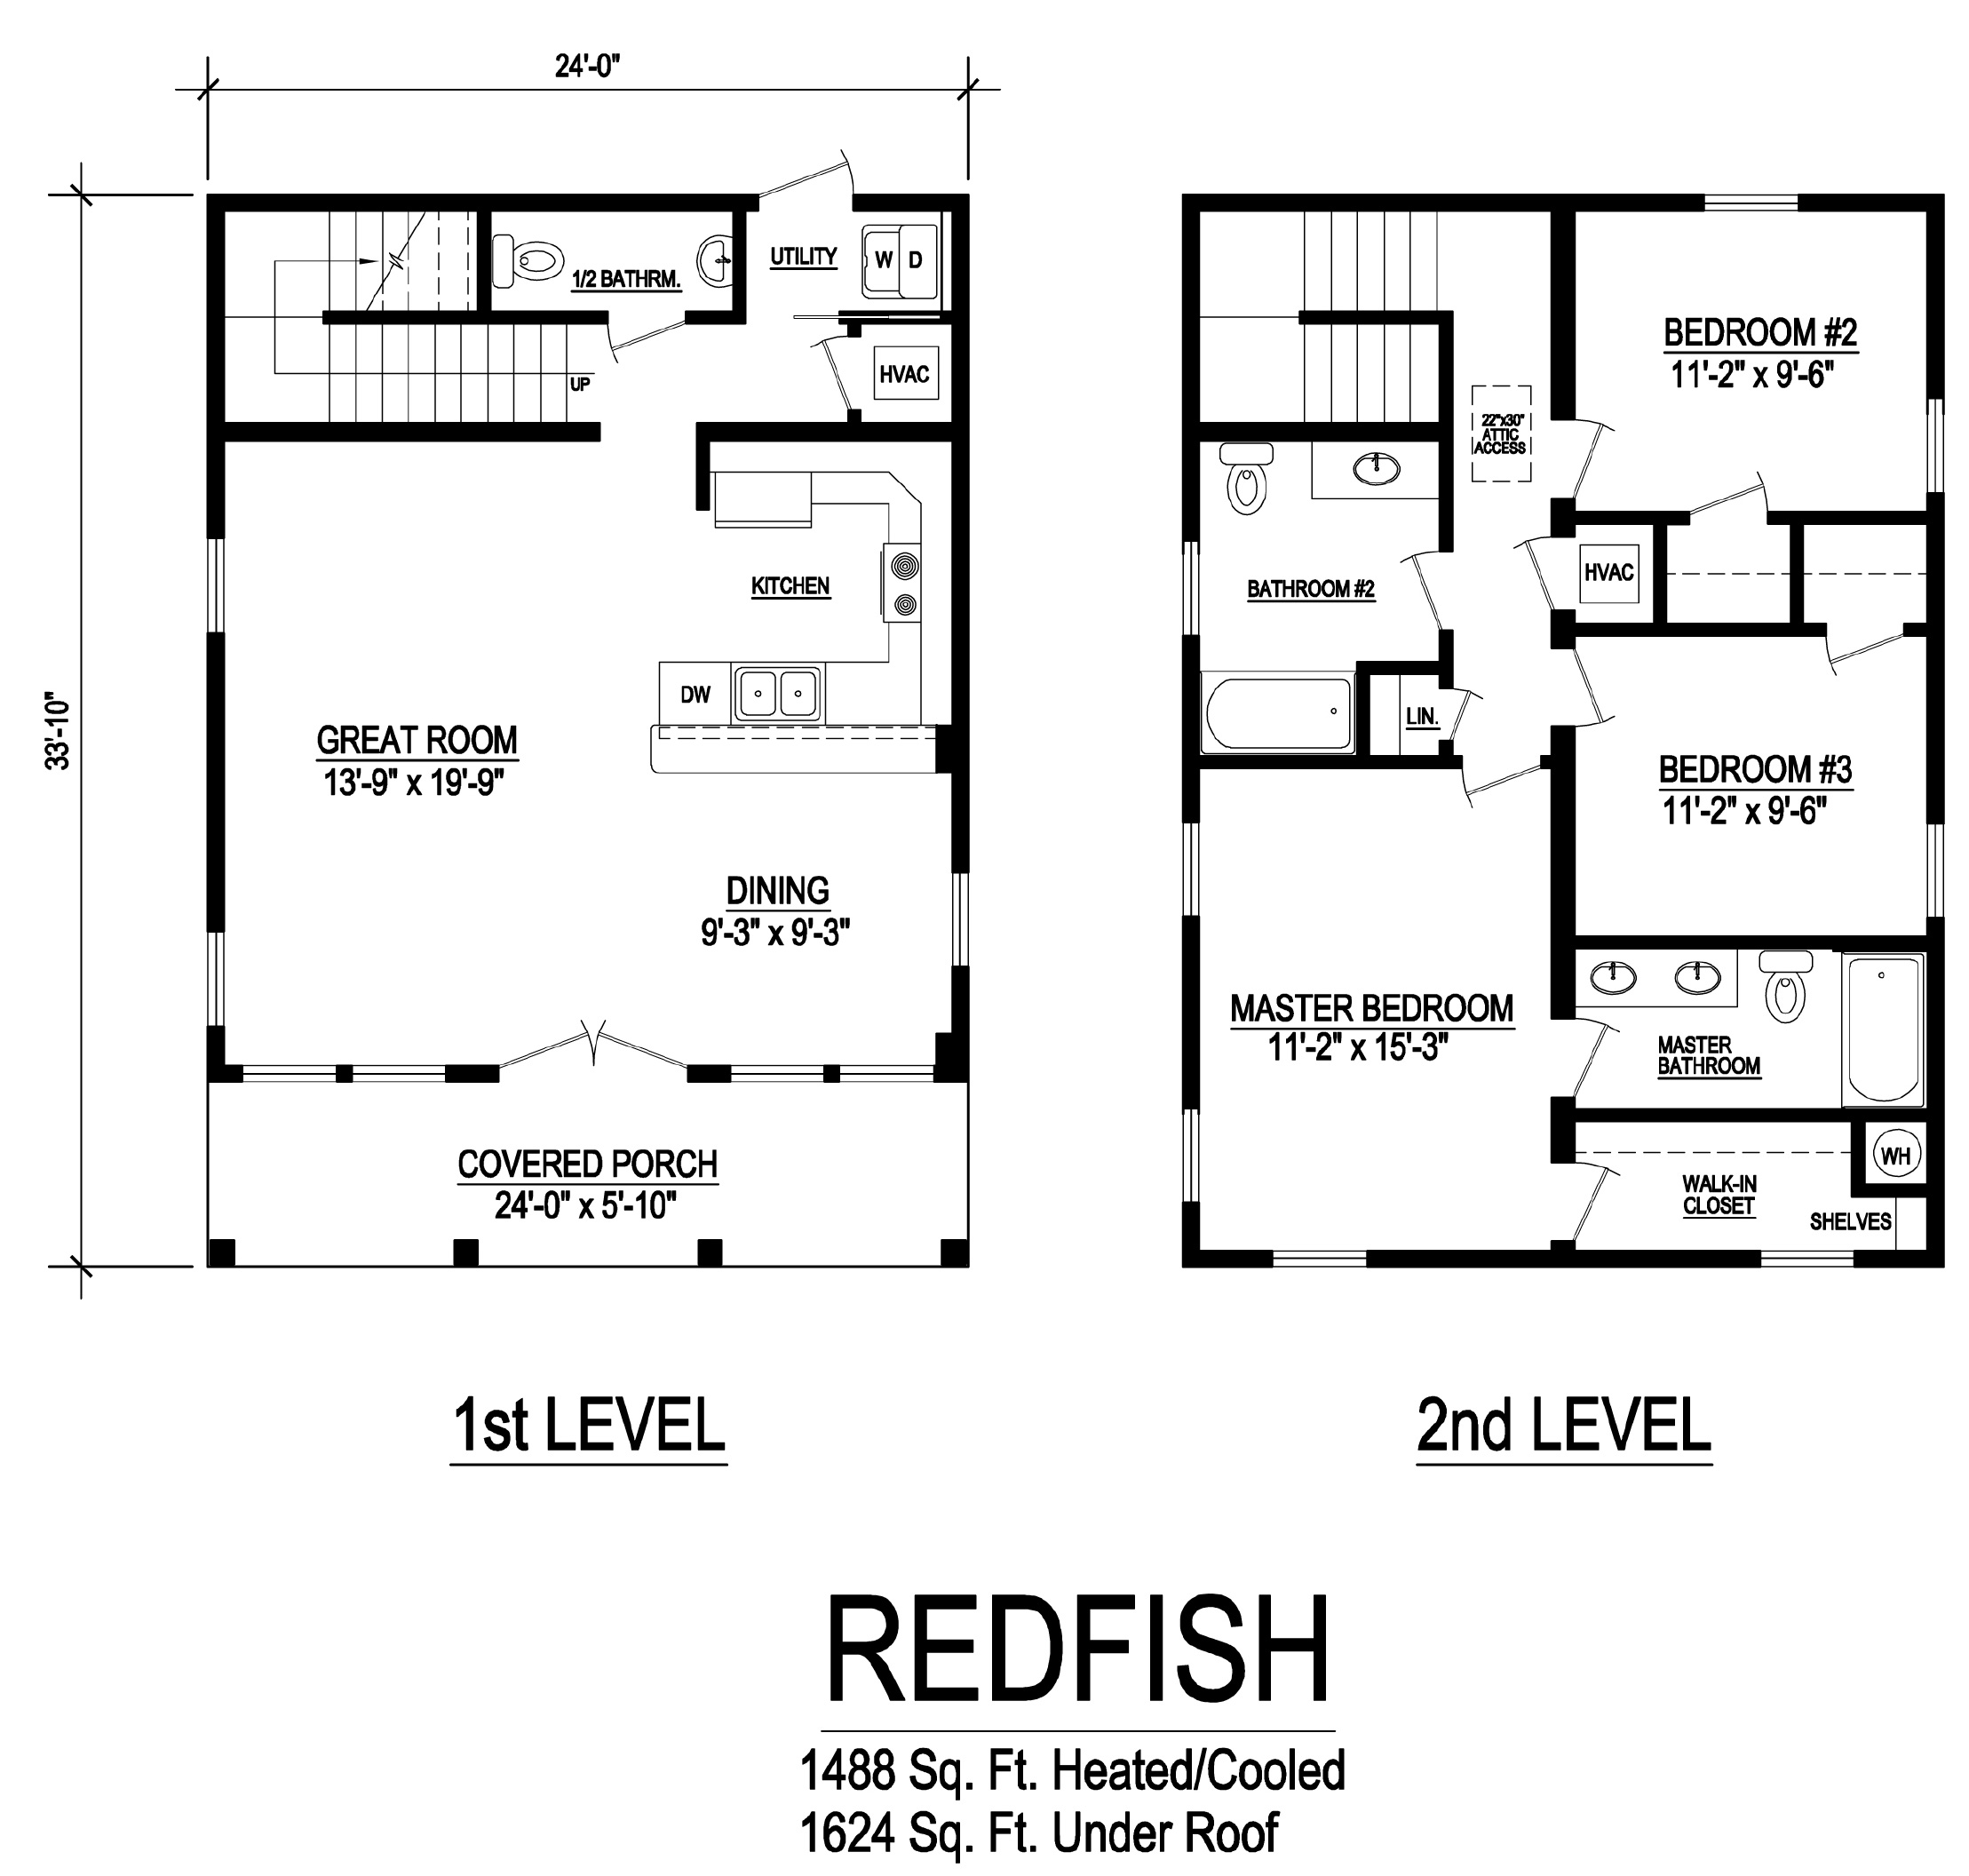 redfish modular home floorplan